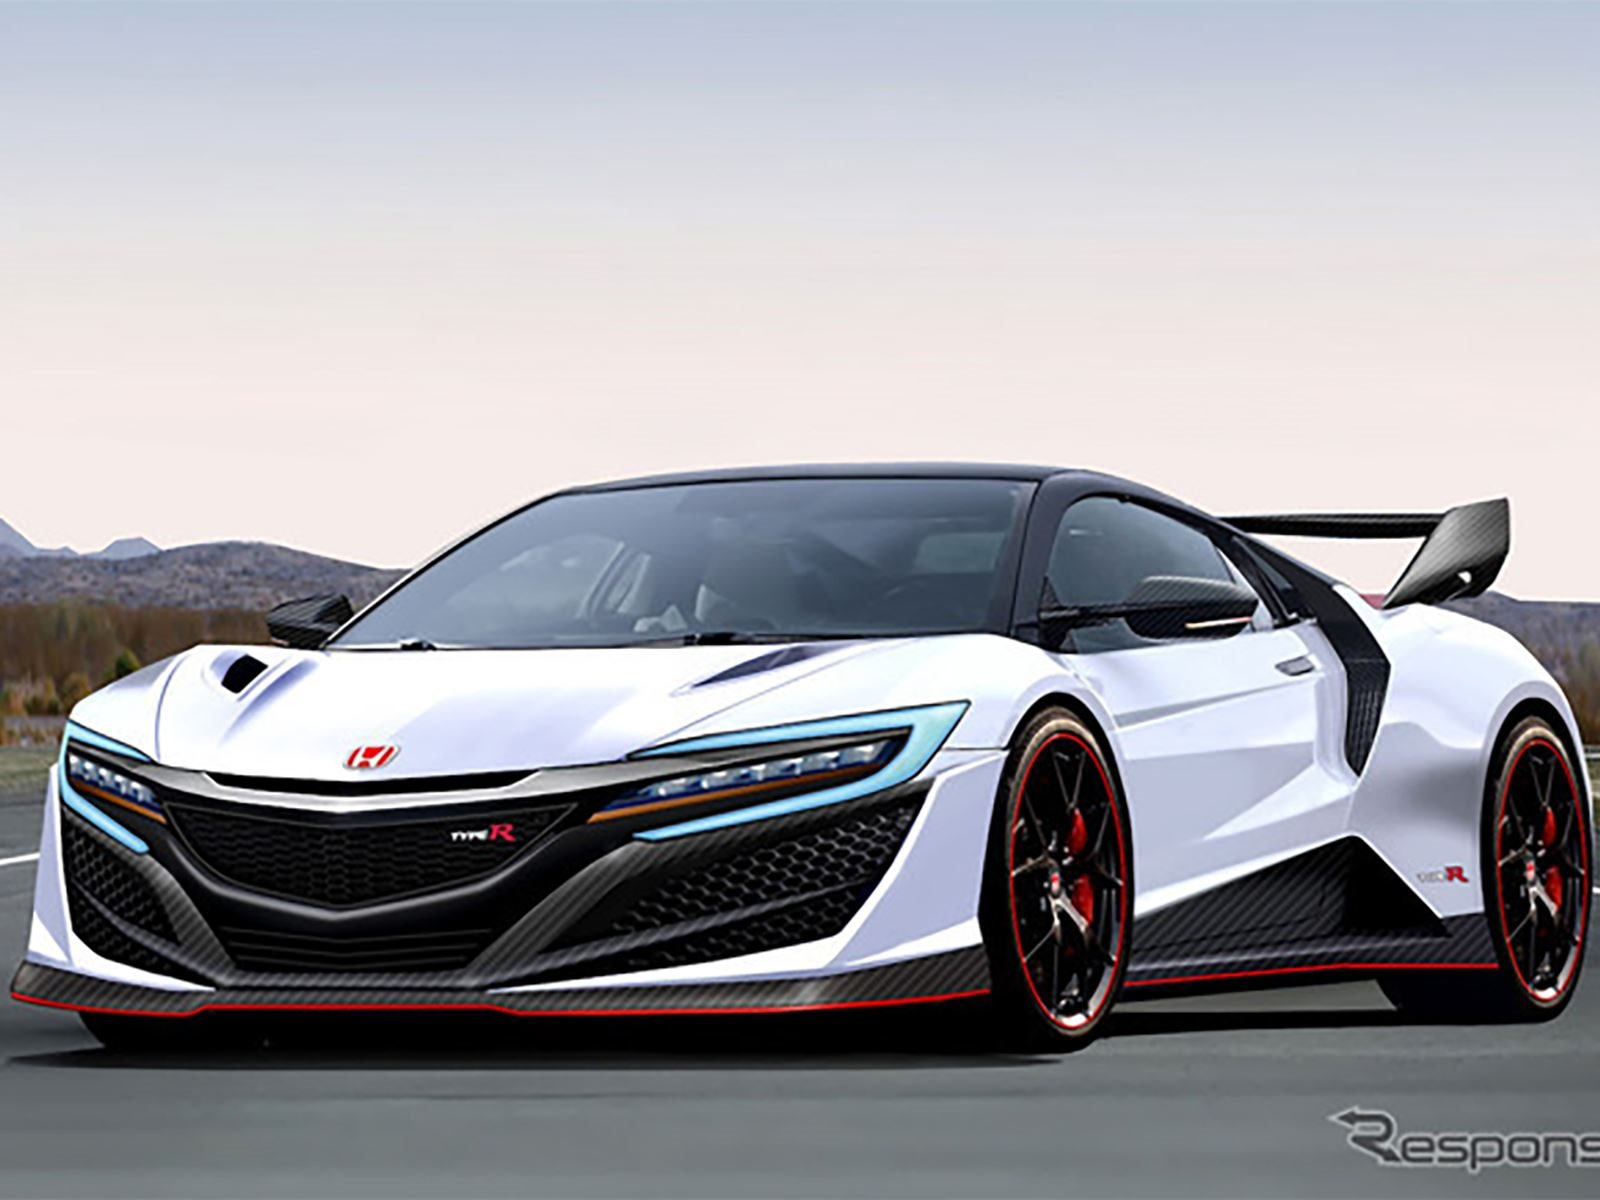 Acura Nsx Could Finally Get The Type R Treatment Next Year Carbuzz